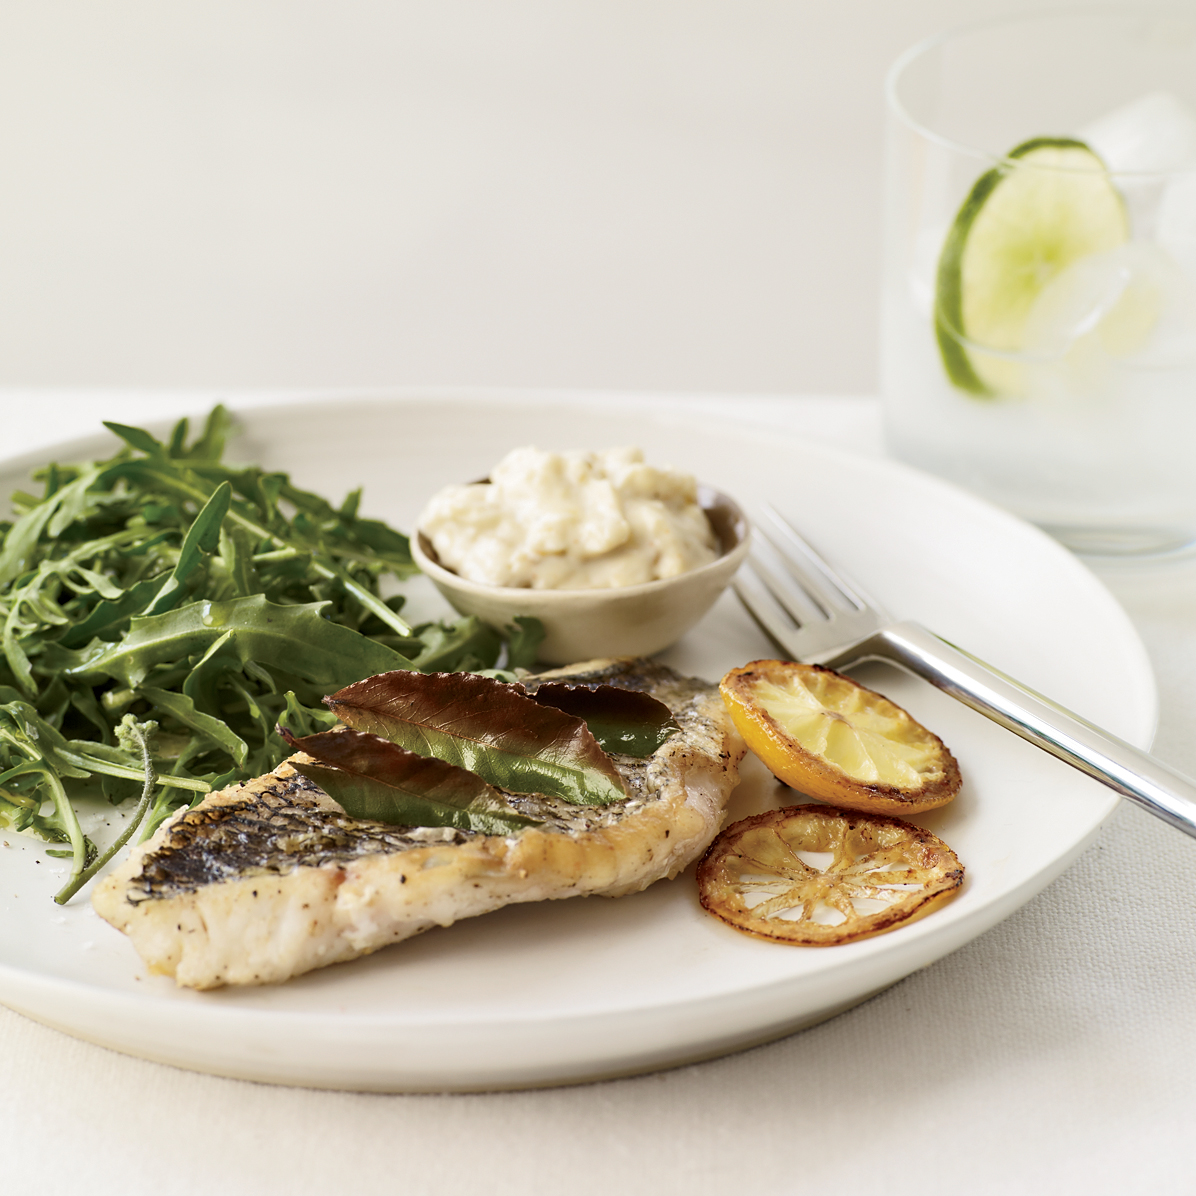 Herb-Broiled Fish with Lemon Aioli